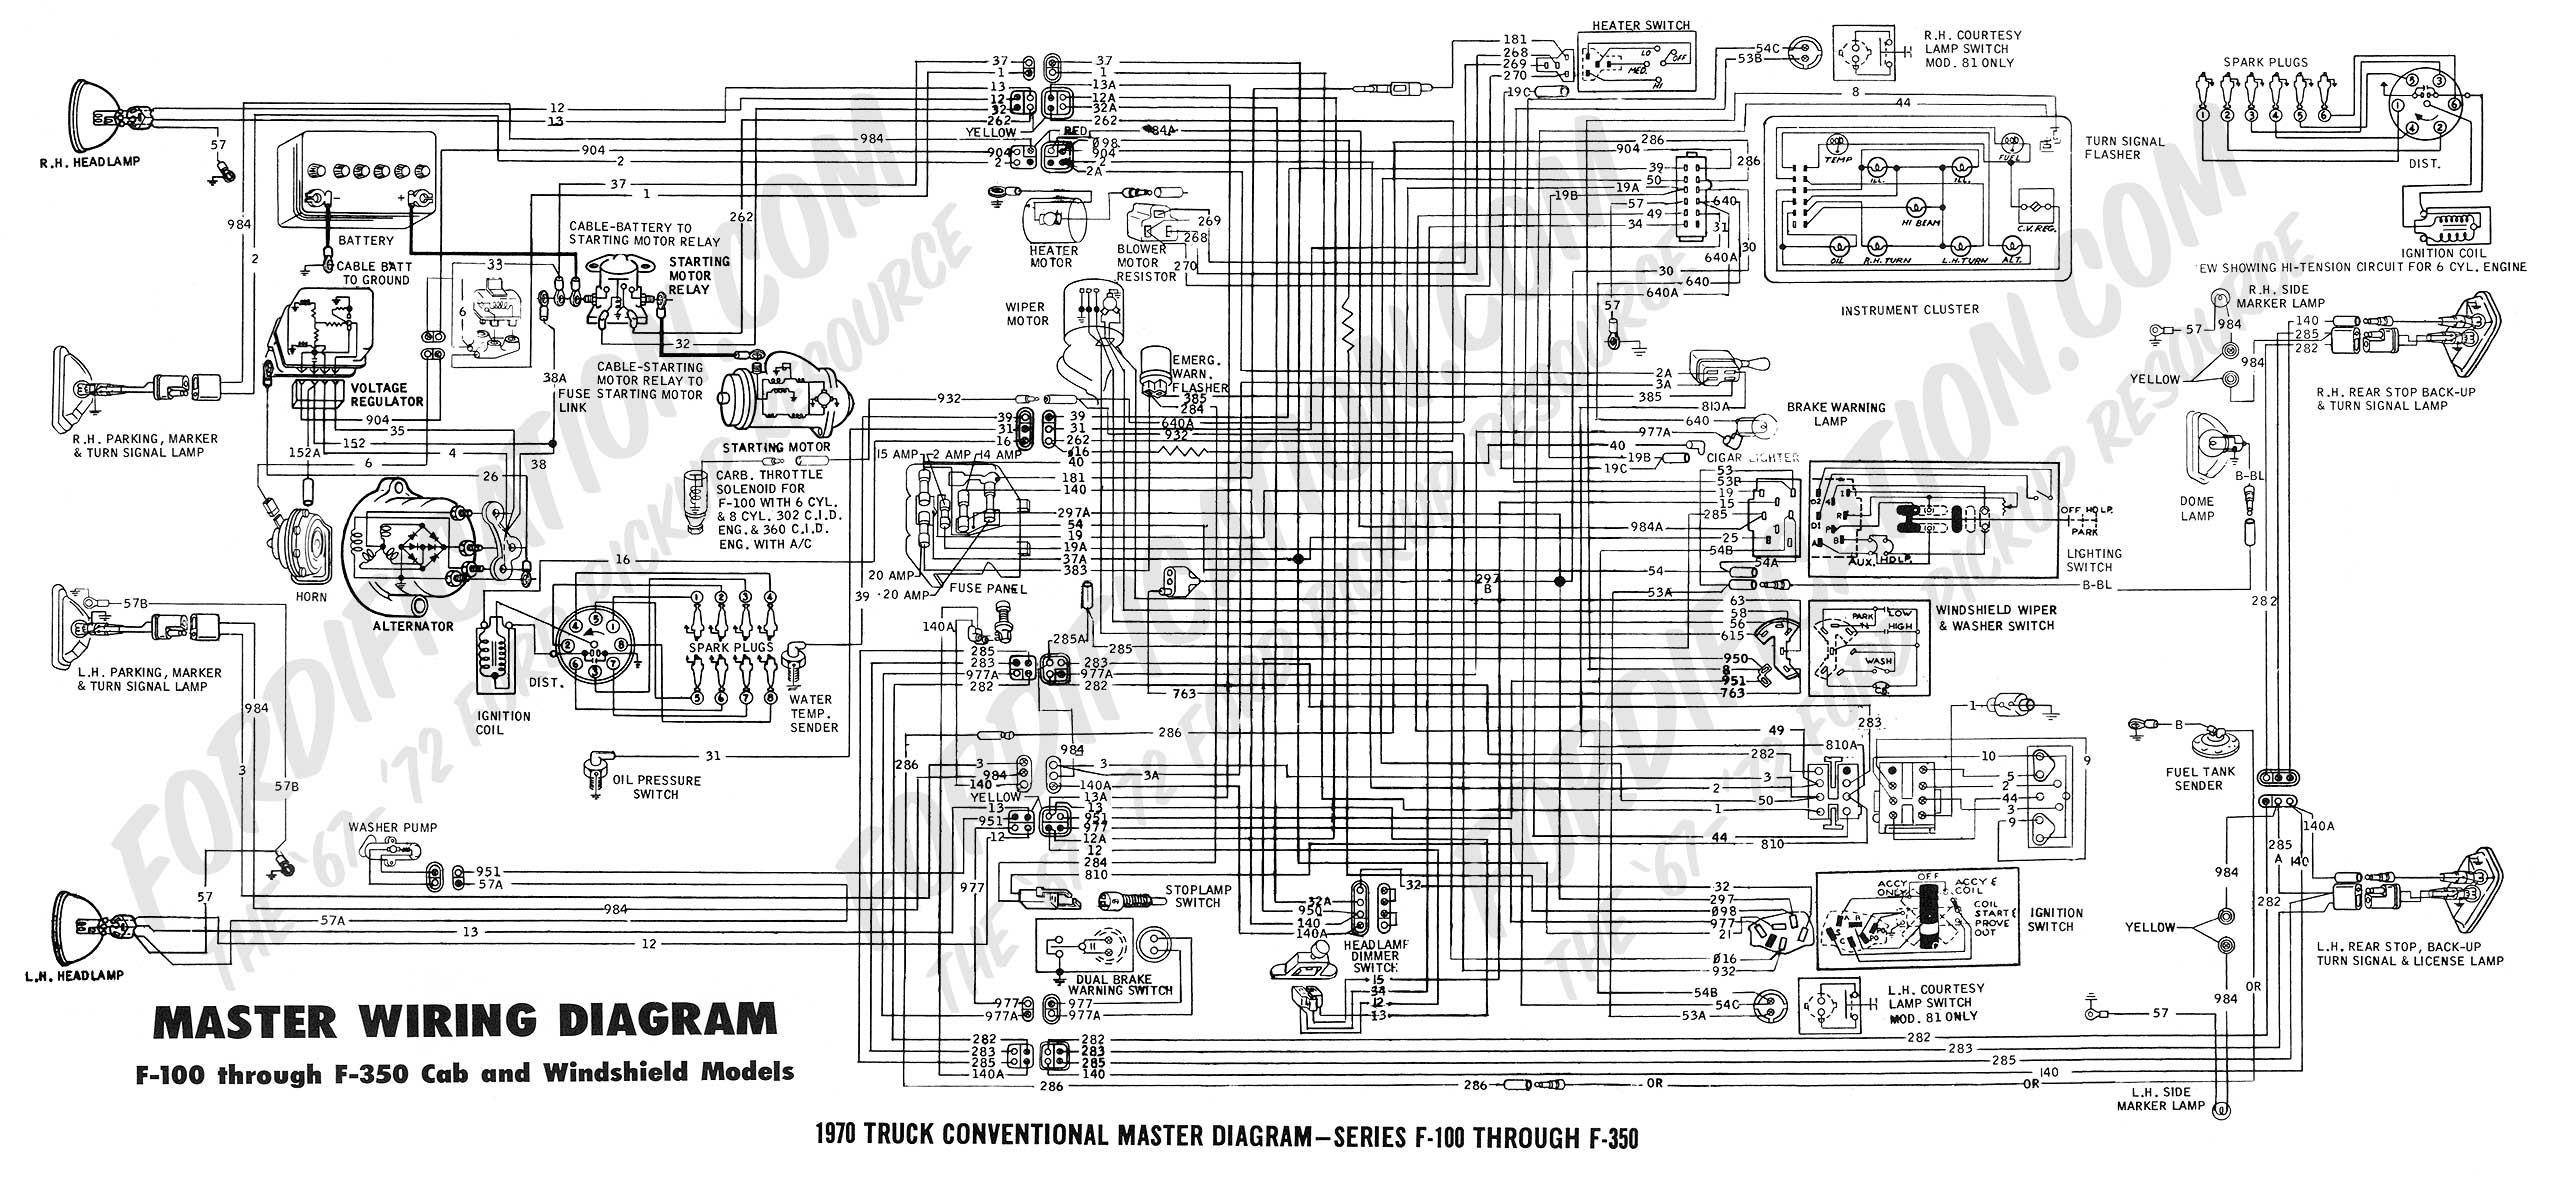 03 ford f350 fuse diagram 2013 ford f350 wiring diagram 2013 wiring diagrams online 2006 f350 fuse diagrams ford powerstroke